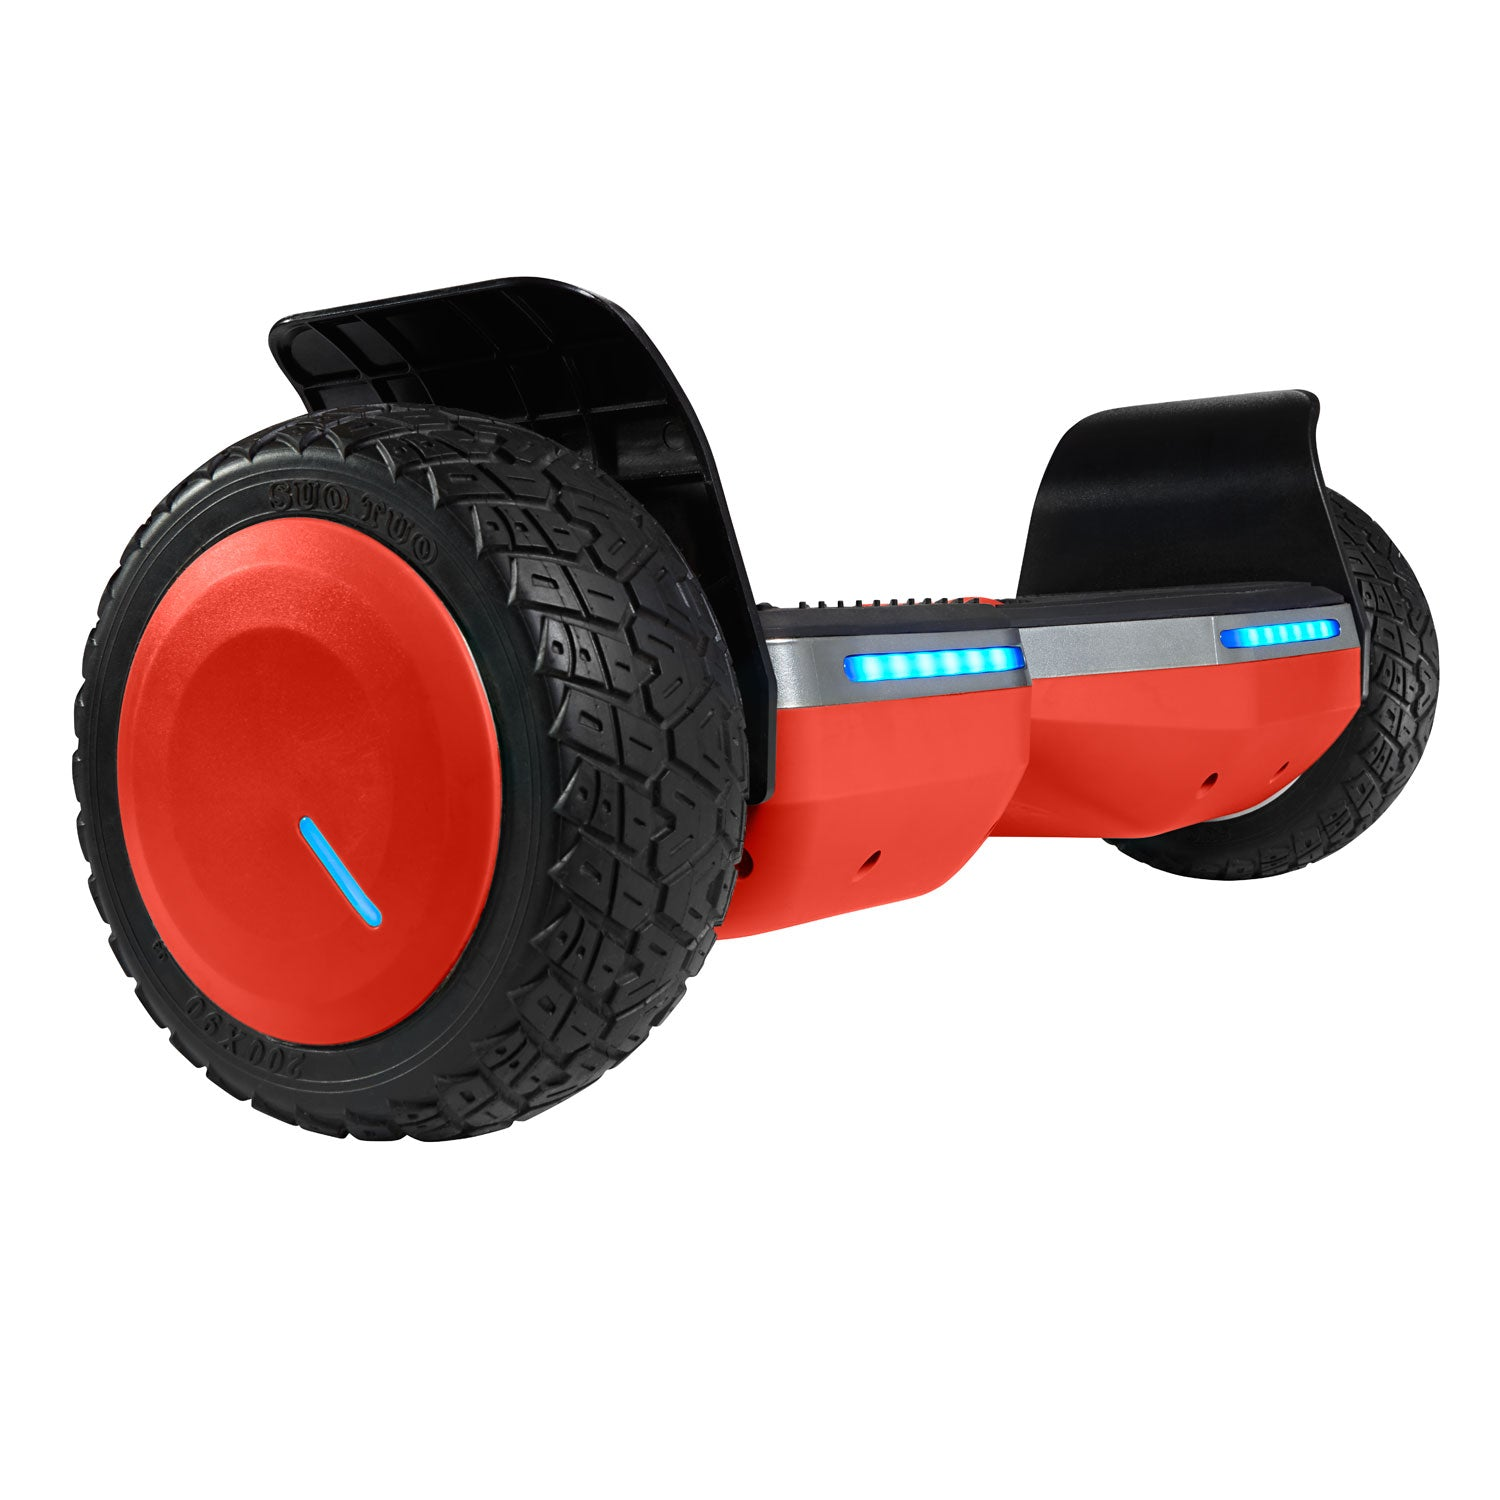 red Main Image SRX Pro all terrain hoverboard with bluetooth